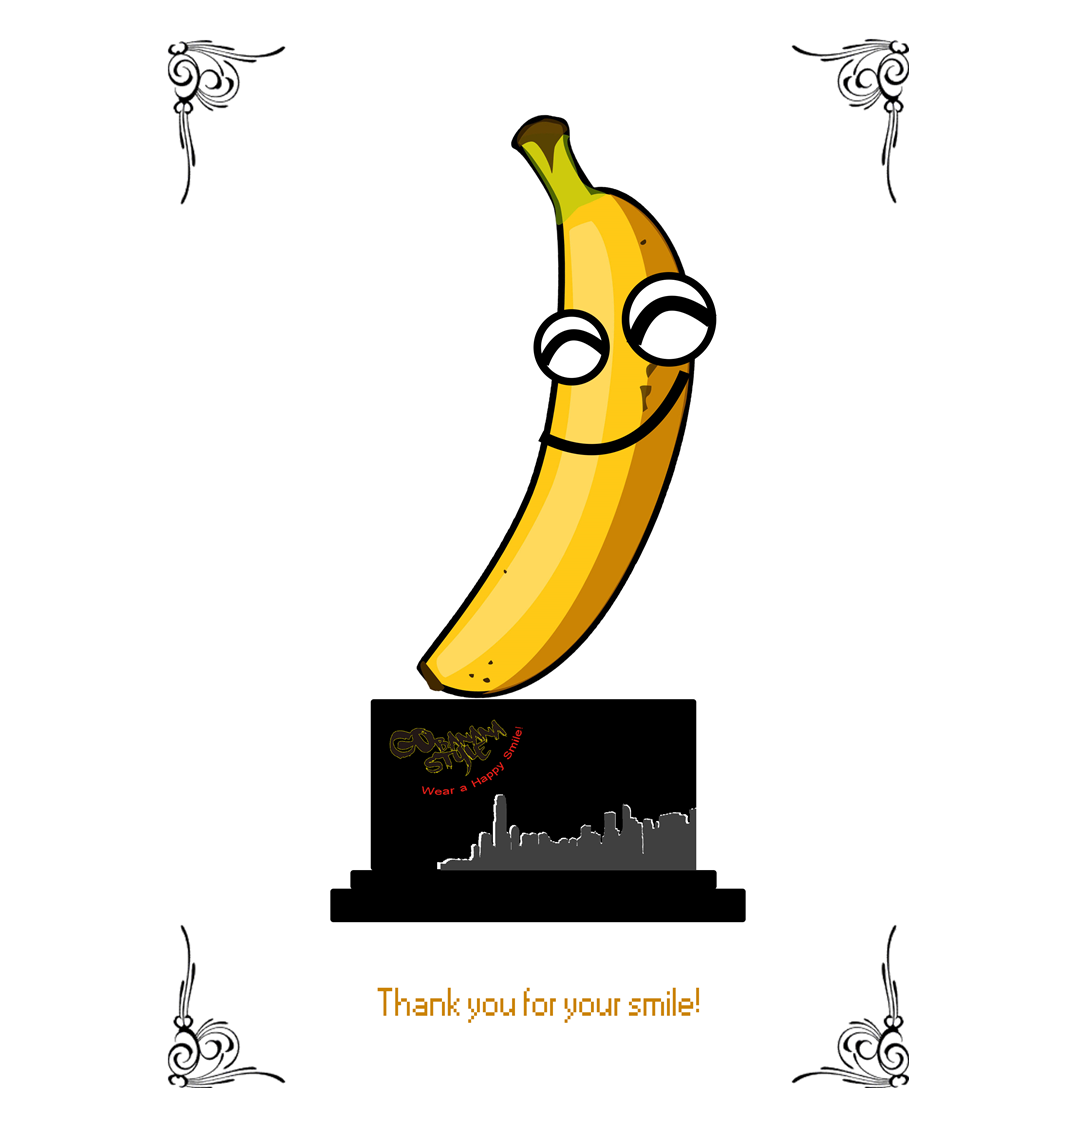 The prince with the Banana Smile by Galorian  - Illustrated by Galorian - Ourboox.com